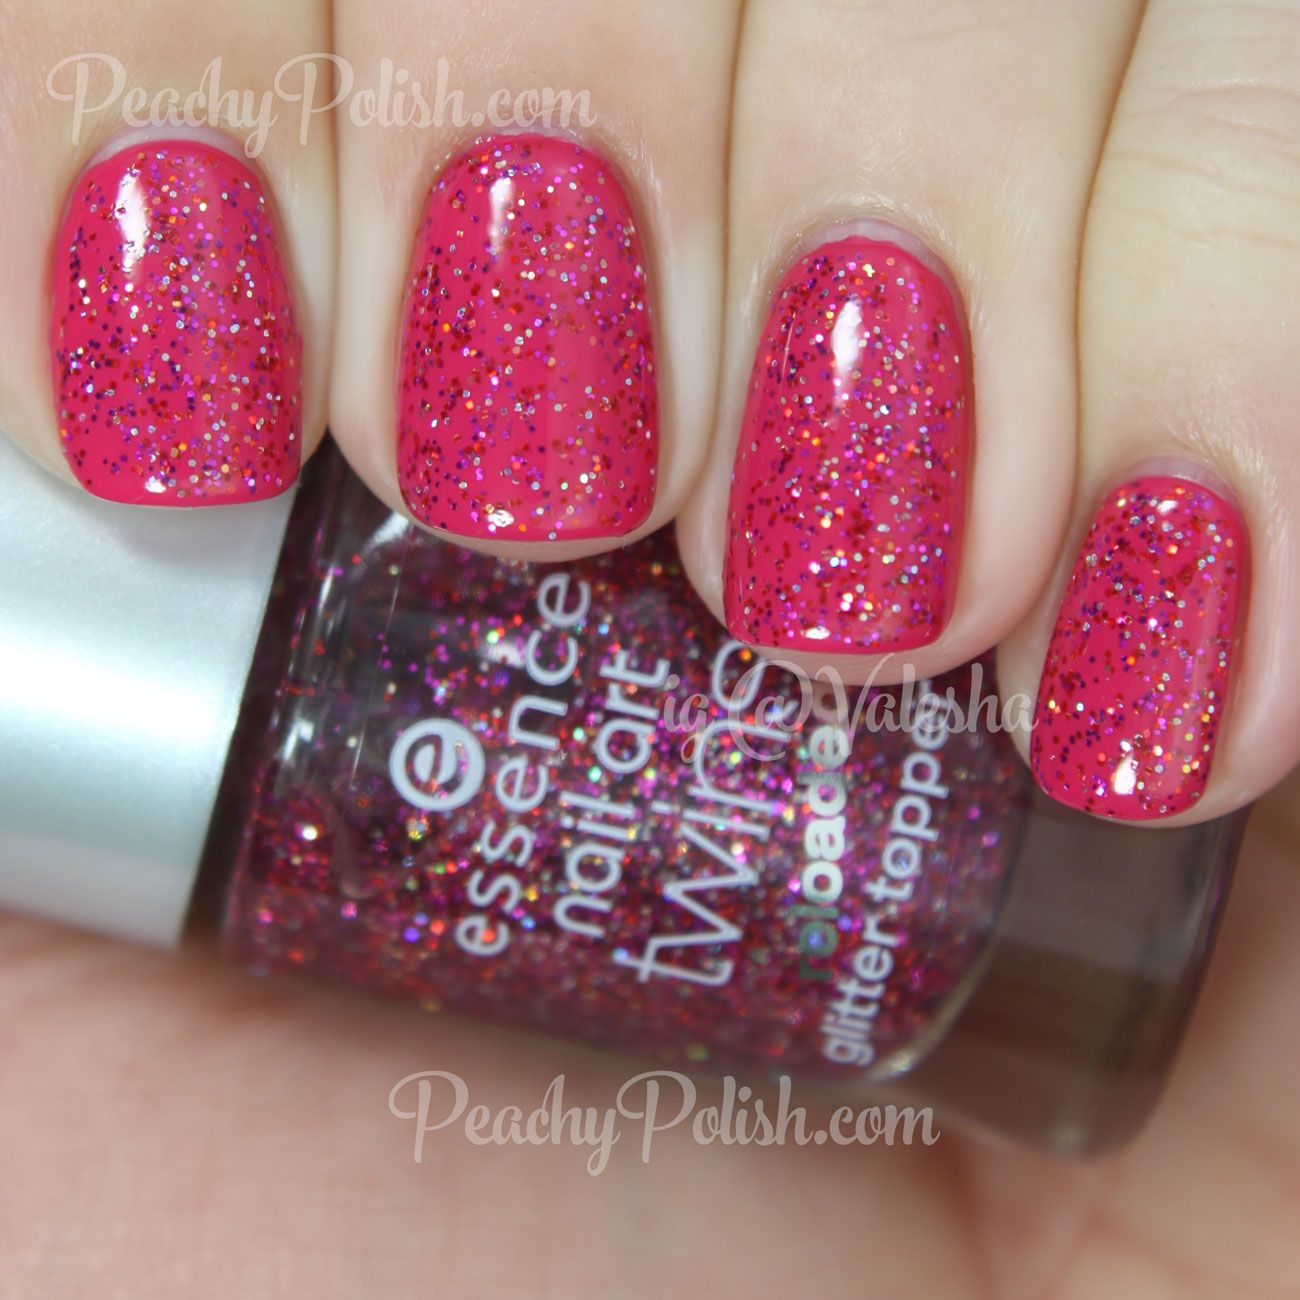 Essence Mr Big Nail Art Twins Peachy Polish Szp Krmk